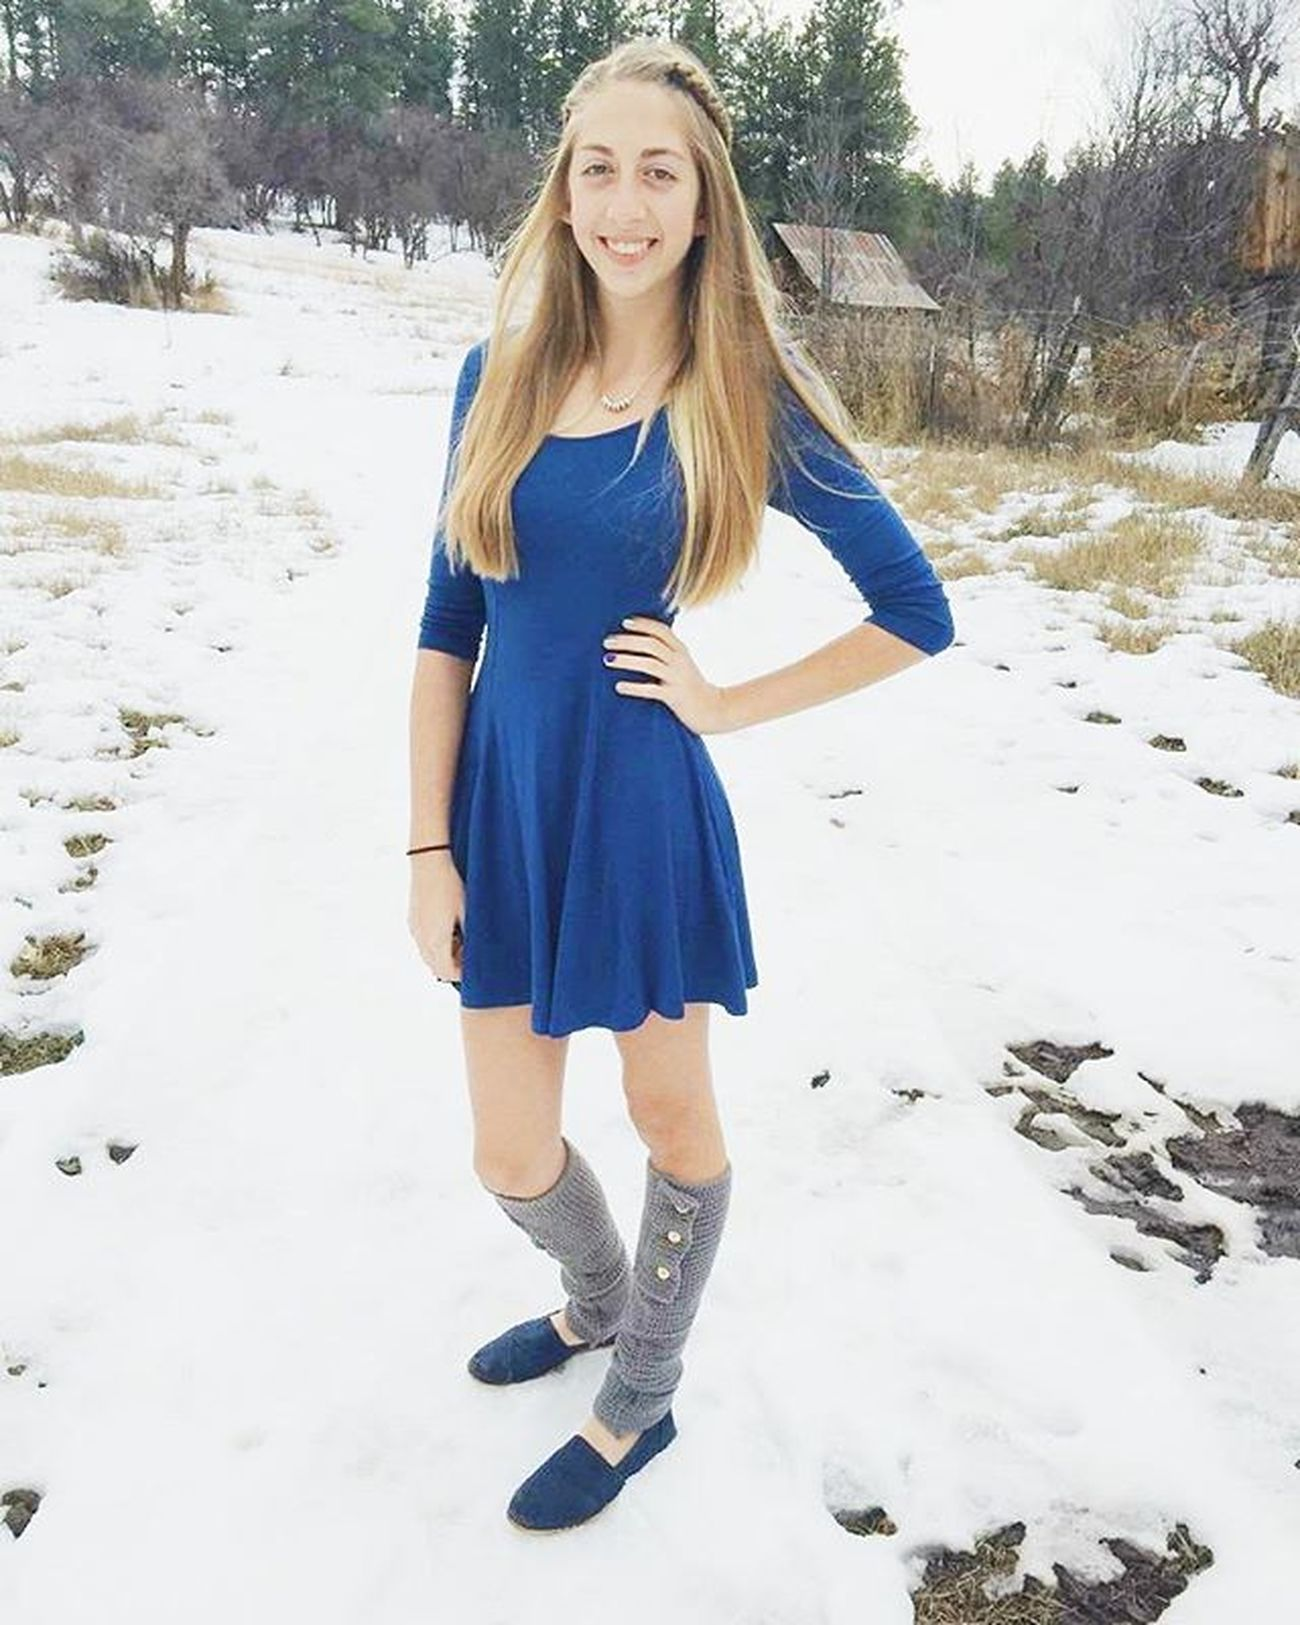 Happy Thanksgiving everyone! Worththecold Legwarmers Kiva Blue Dress Thanksgiving Favoriteholiday Blessed  Love